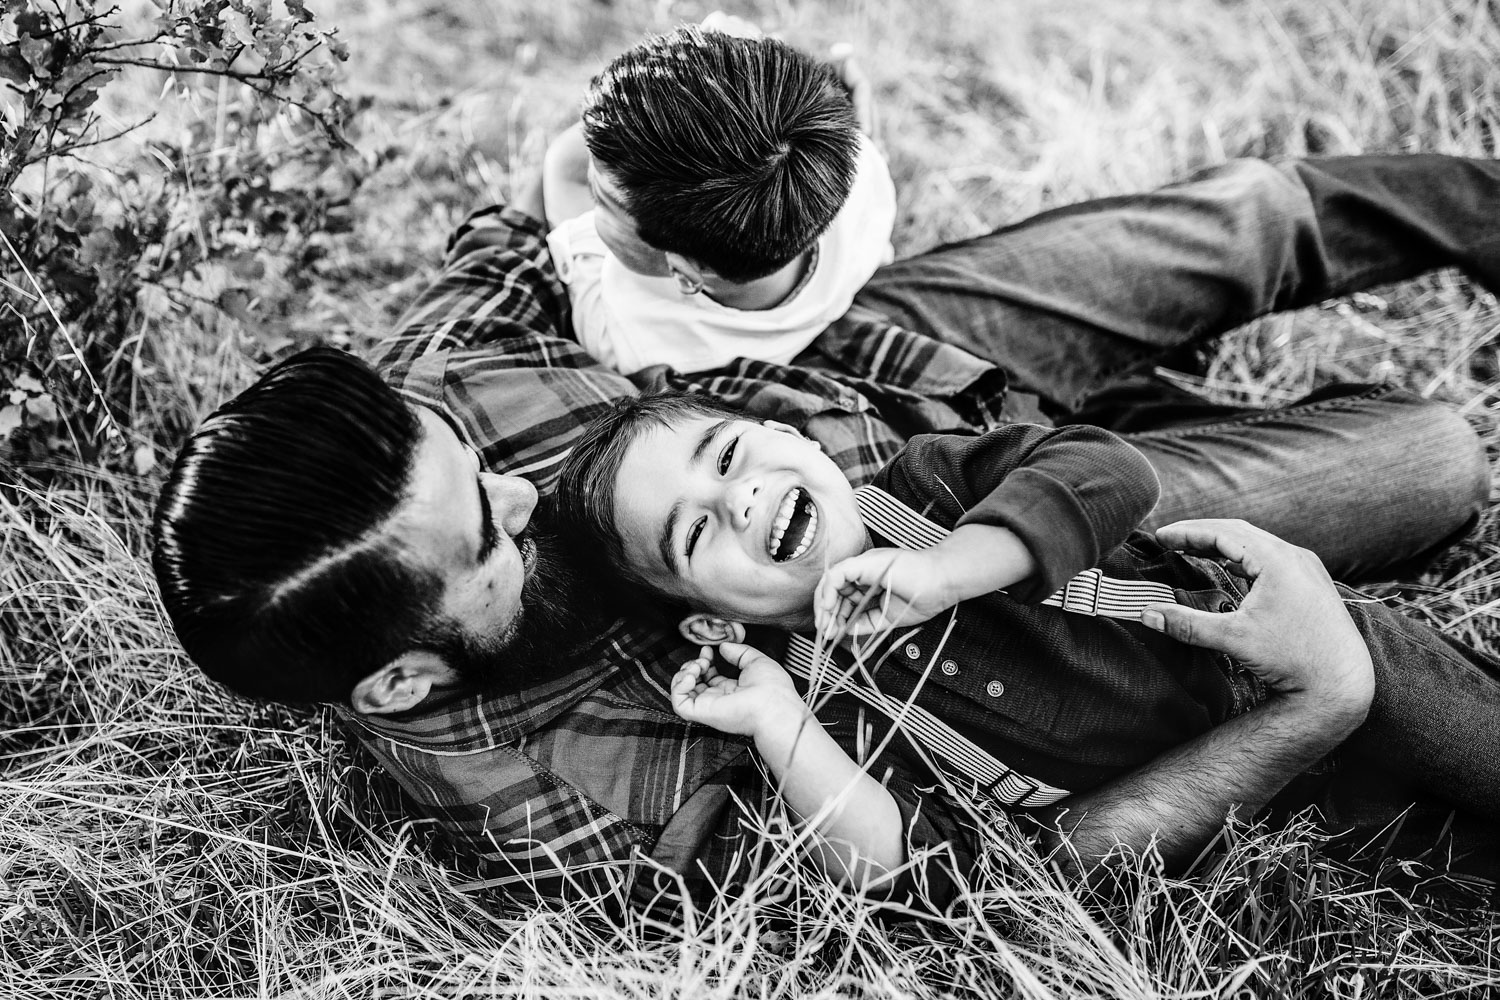 Two boys and their father play and laugh together during family pictures with Amy Wright Photography, based out of Roseville, Rocklin, and Sacramento, California.